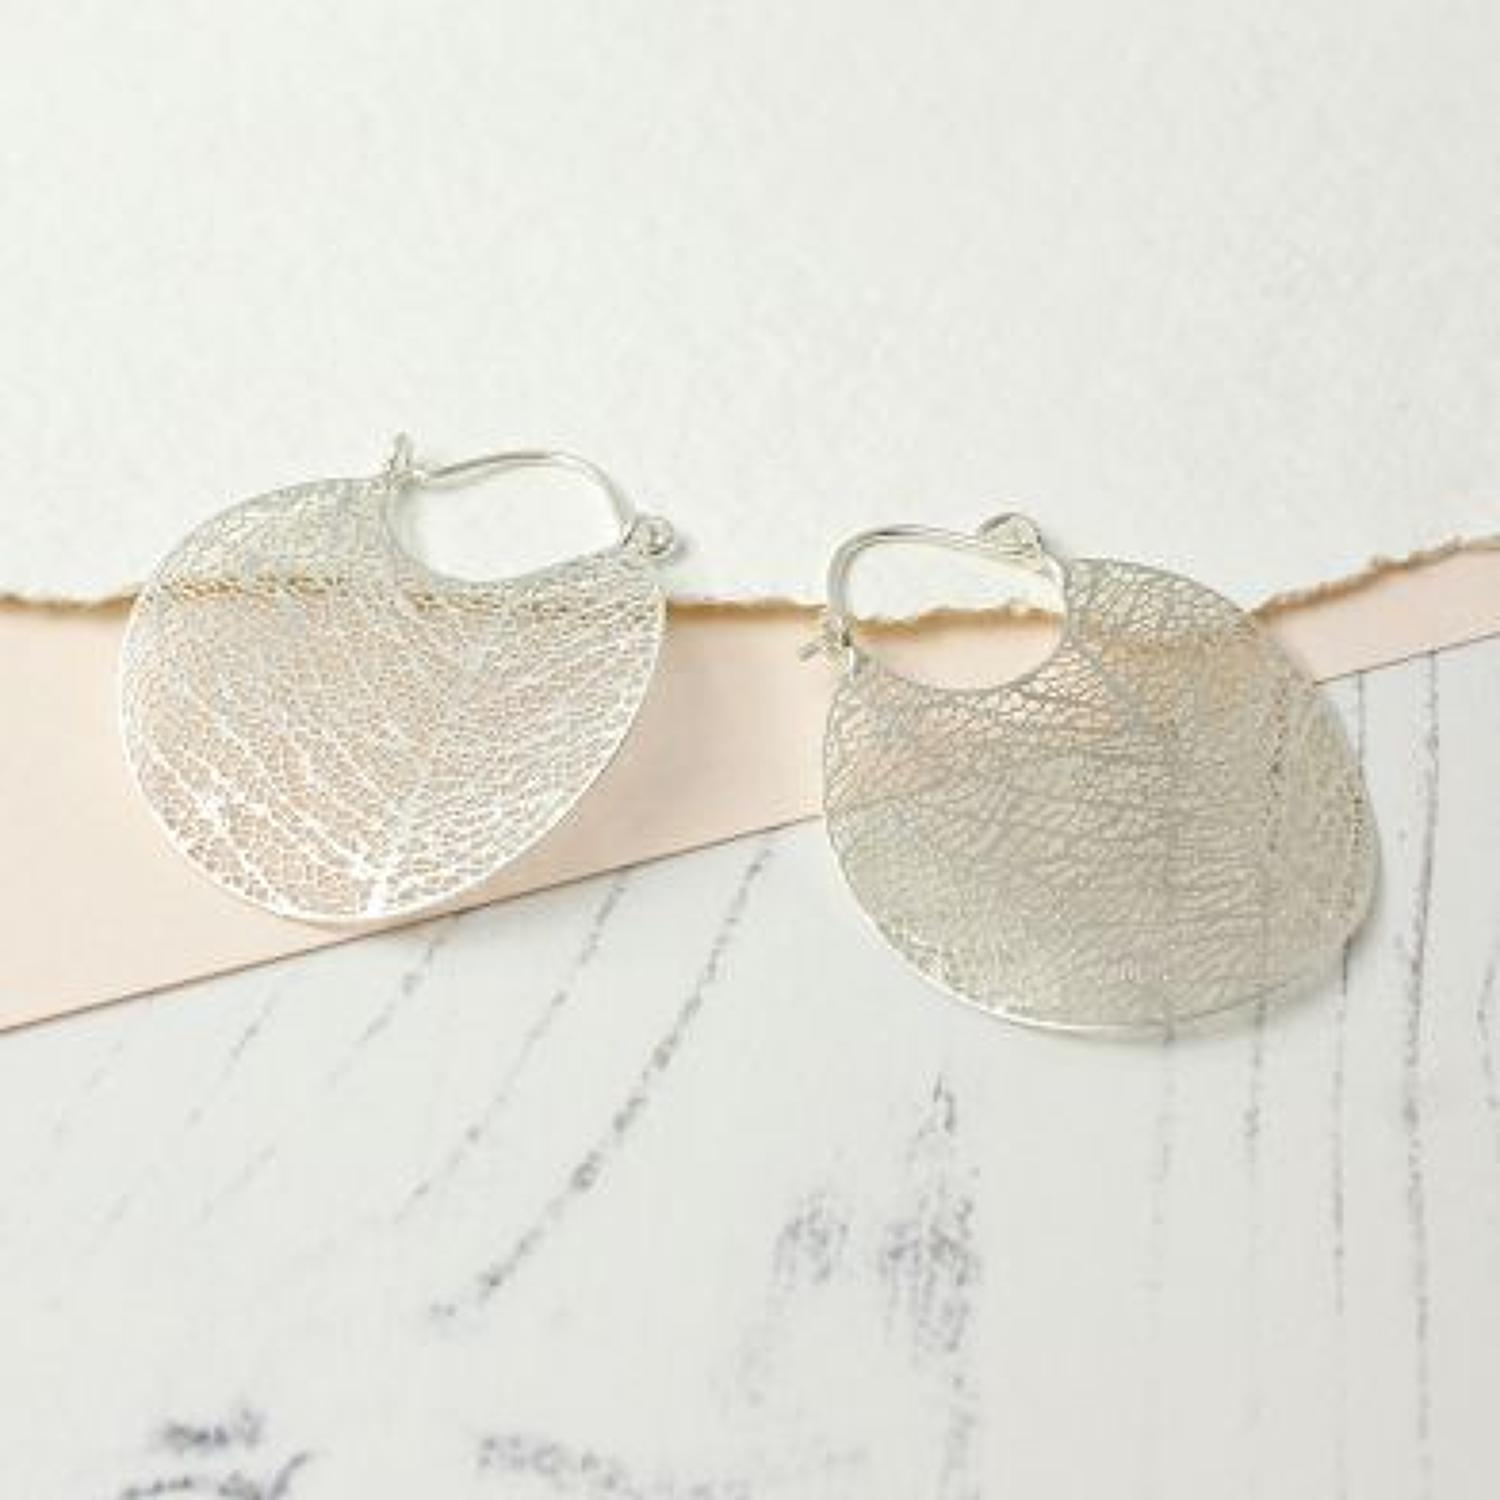 Scratched silver plated filigree delicate earrings